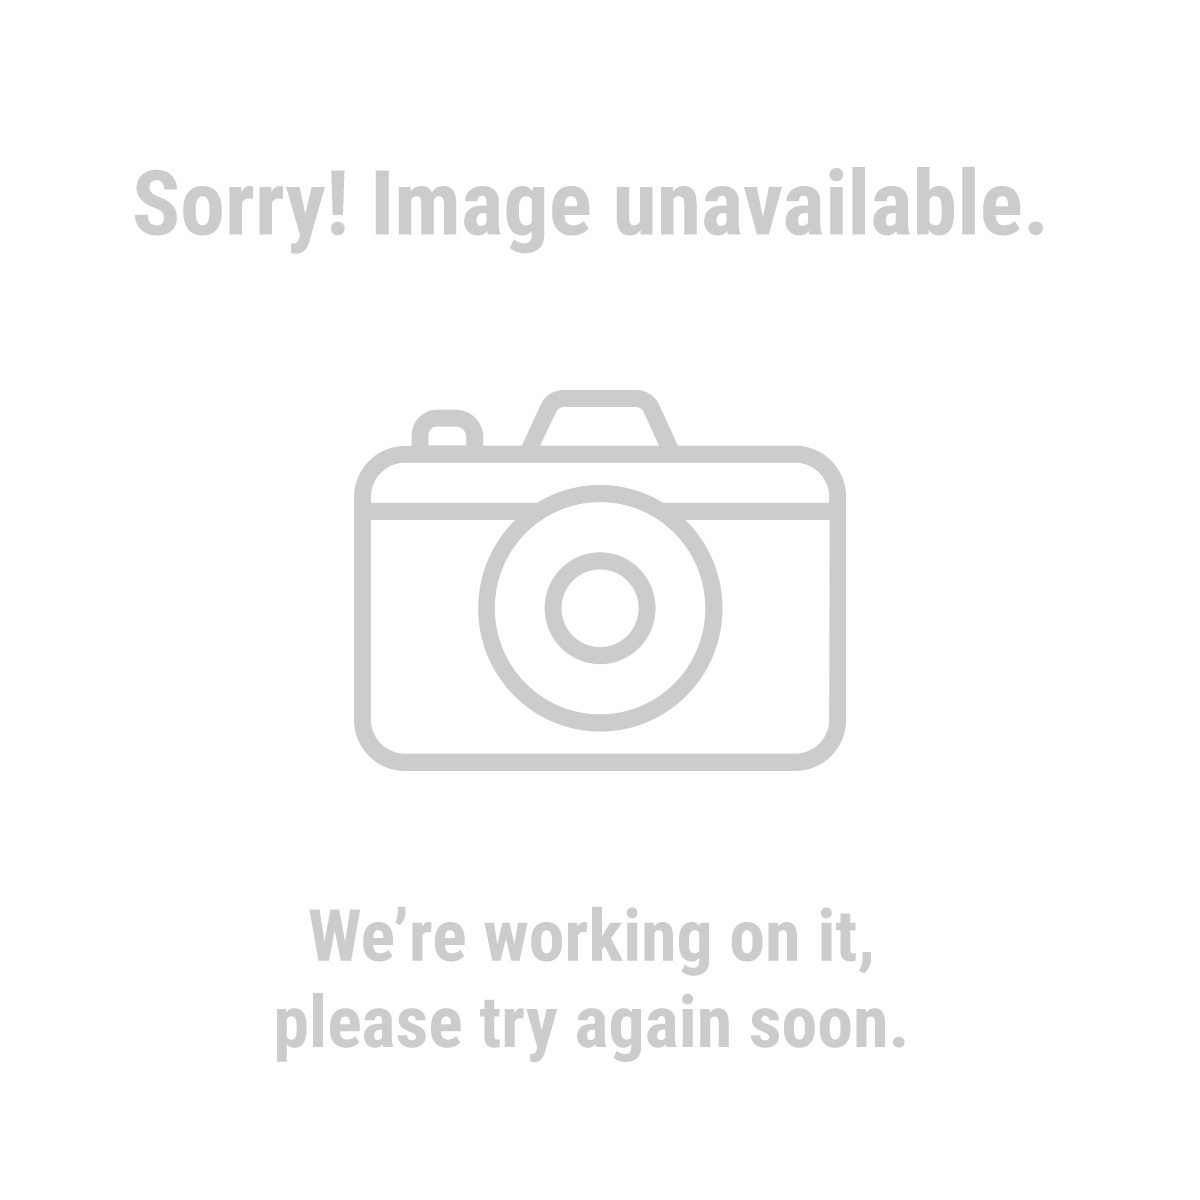 Badland® 61256 12000 lb. Off-Road Vehicle Electric Winch with Automatic Load-Holding Brake